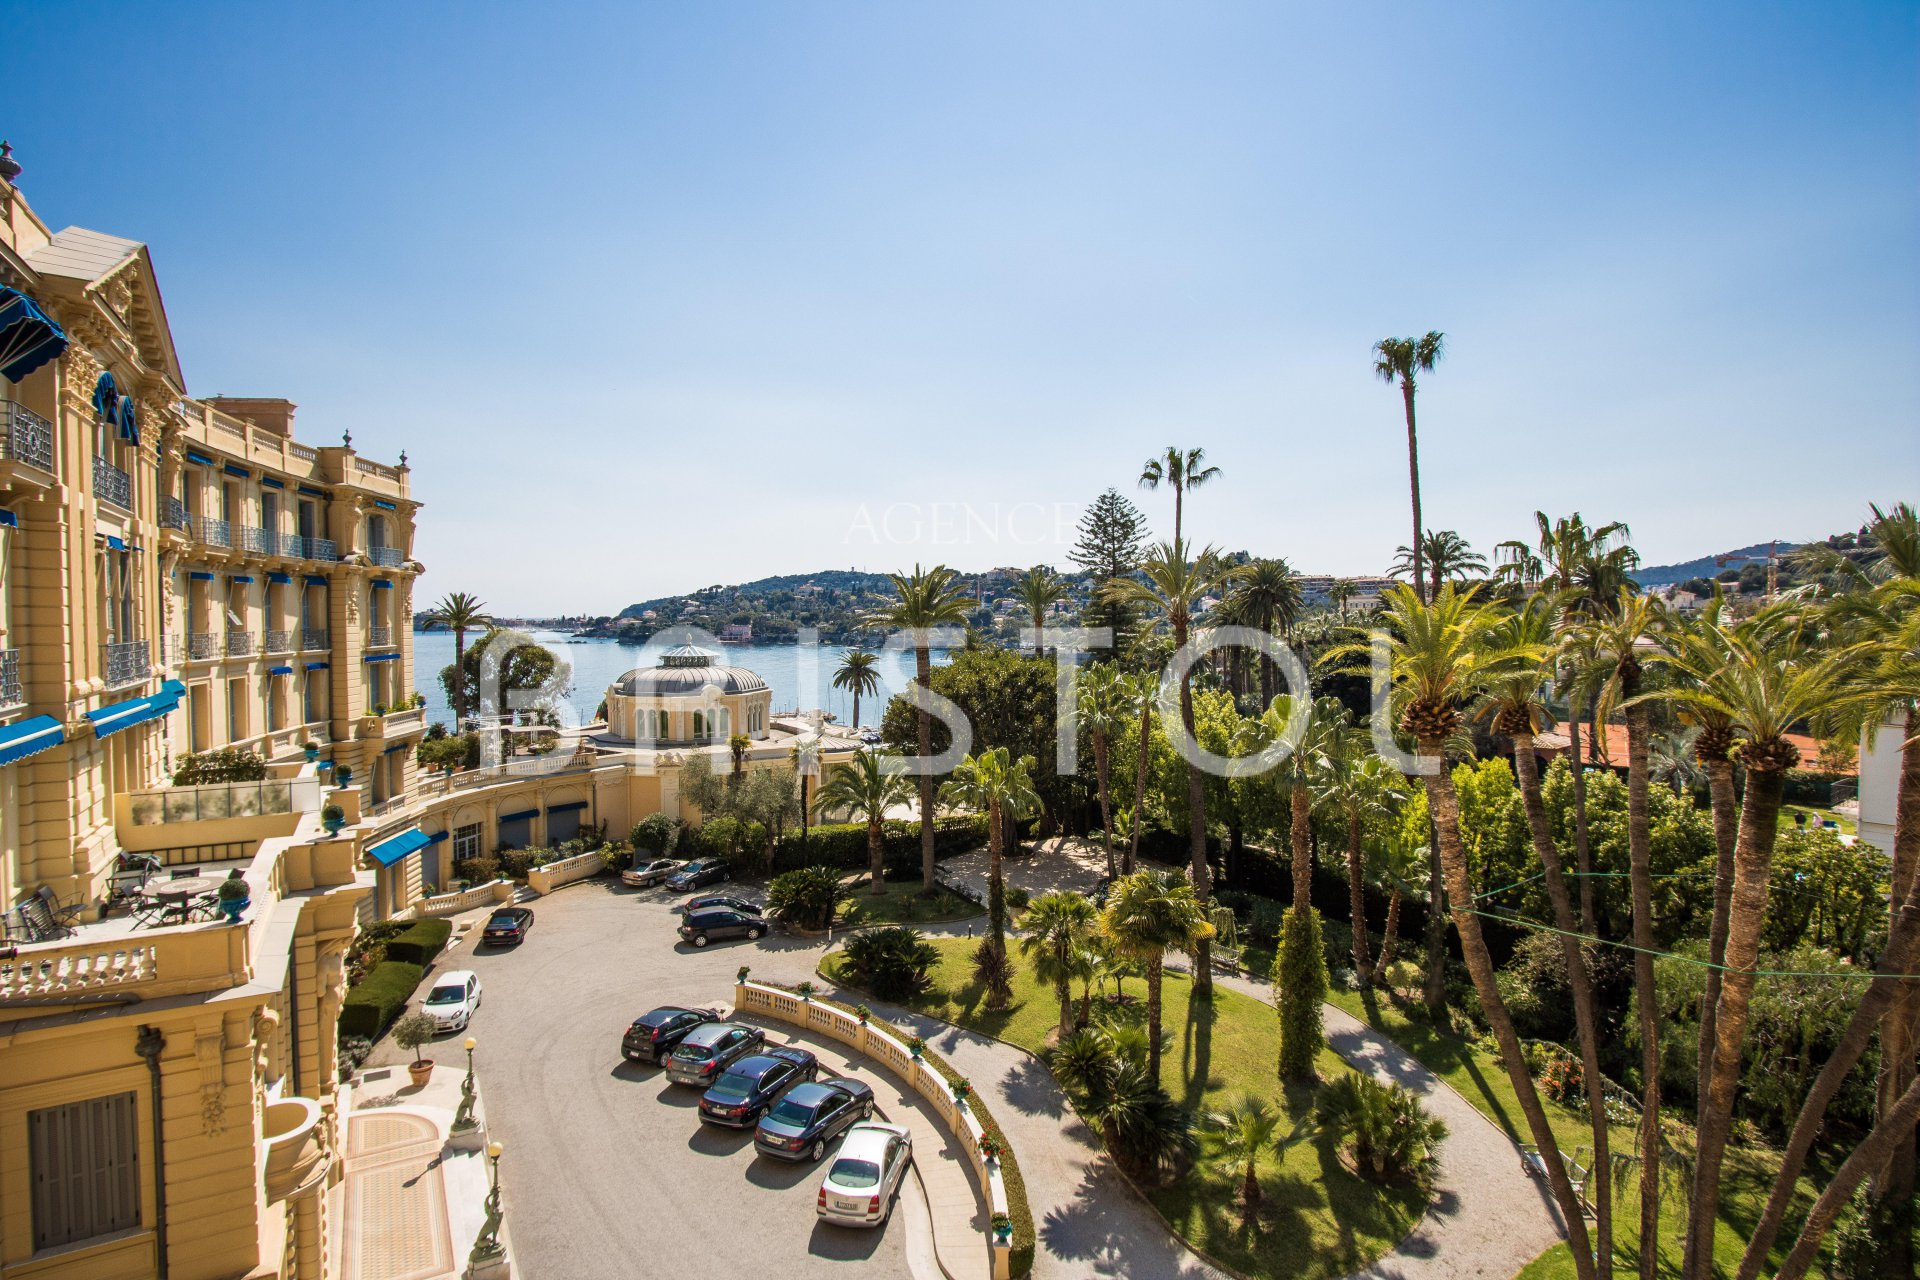 Apartment for sale in Beaulieu sur mer Bristol résicence sea view